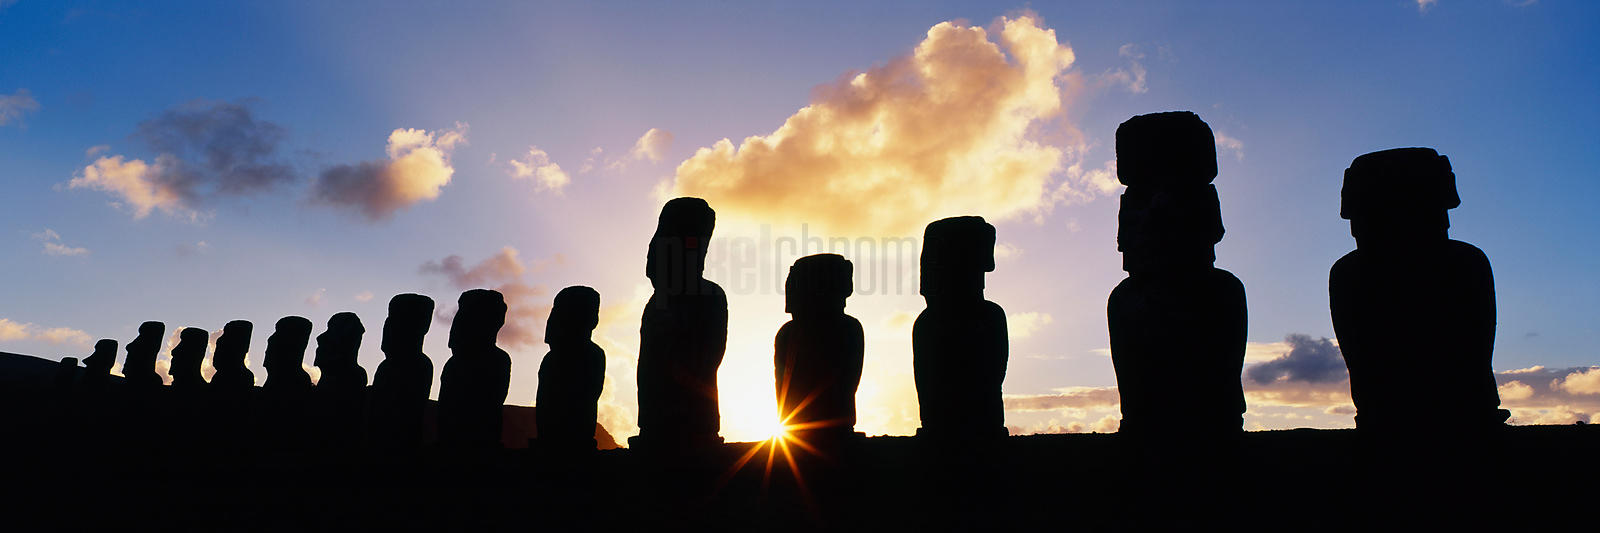 Moai at Ahu Tongariki, Easter Island (Rapa Nui), Chile